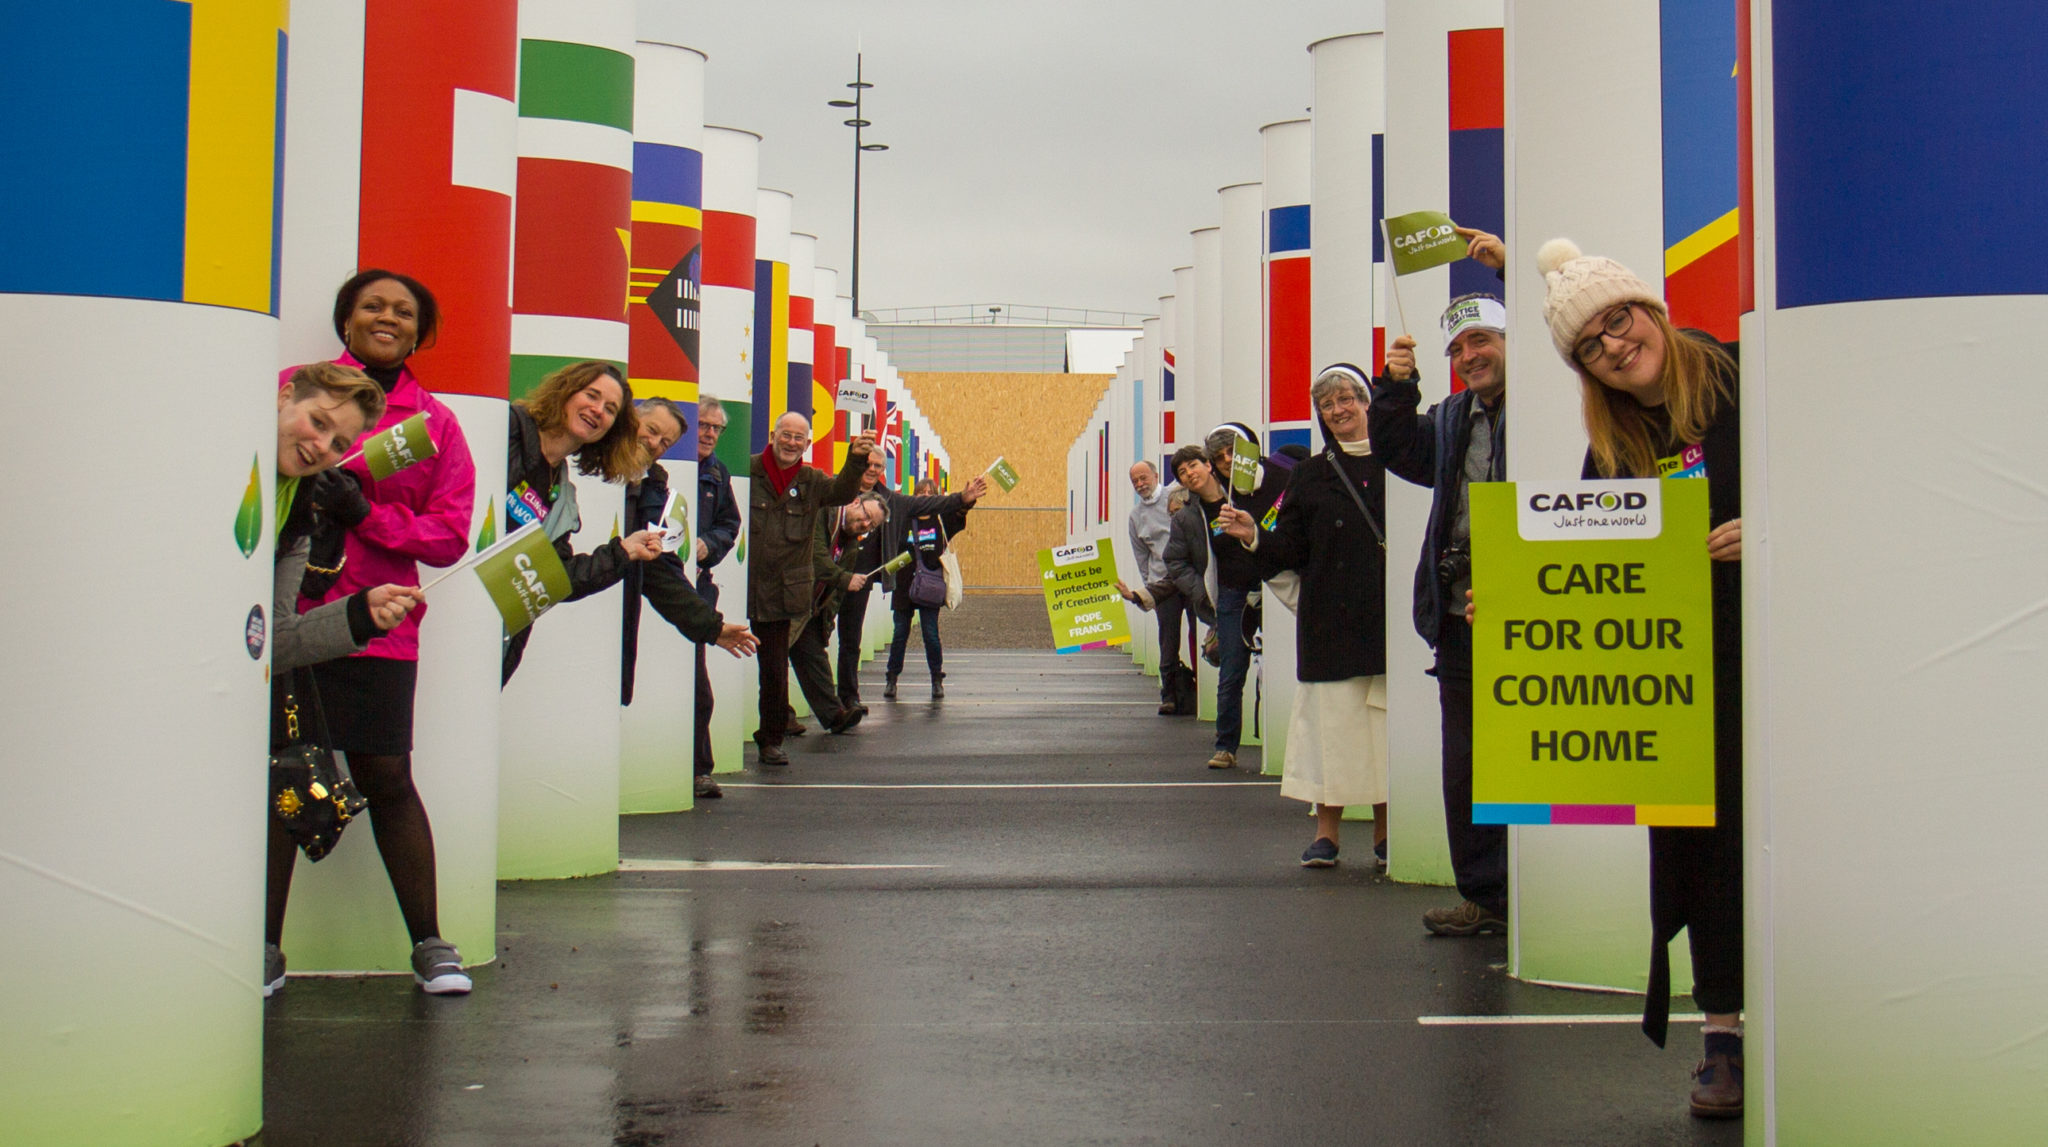 CAFOD supporters at the Paris climate talks